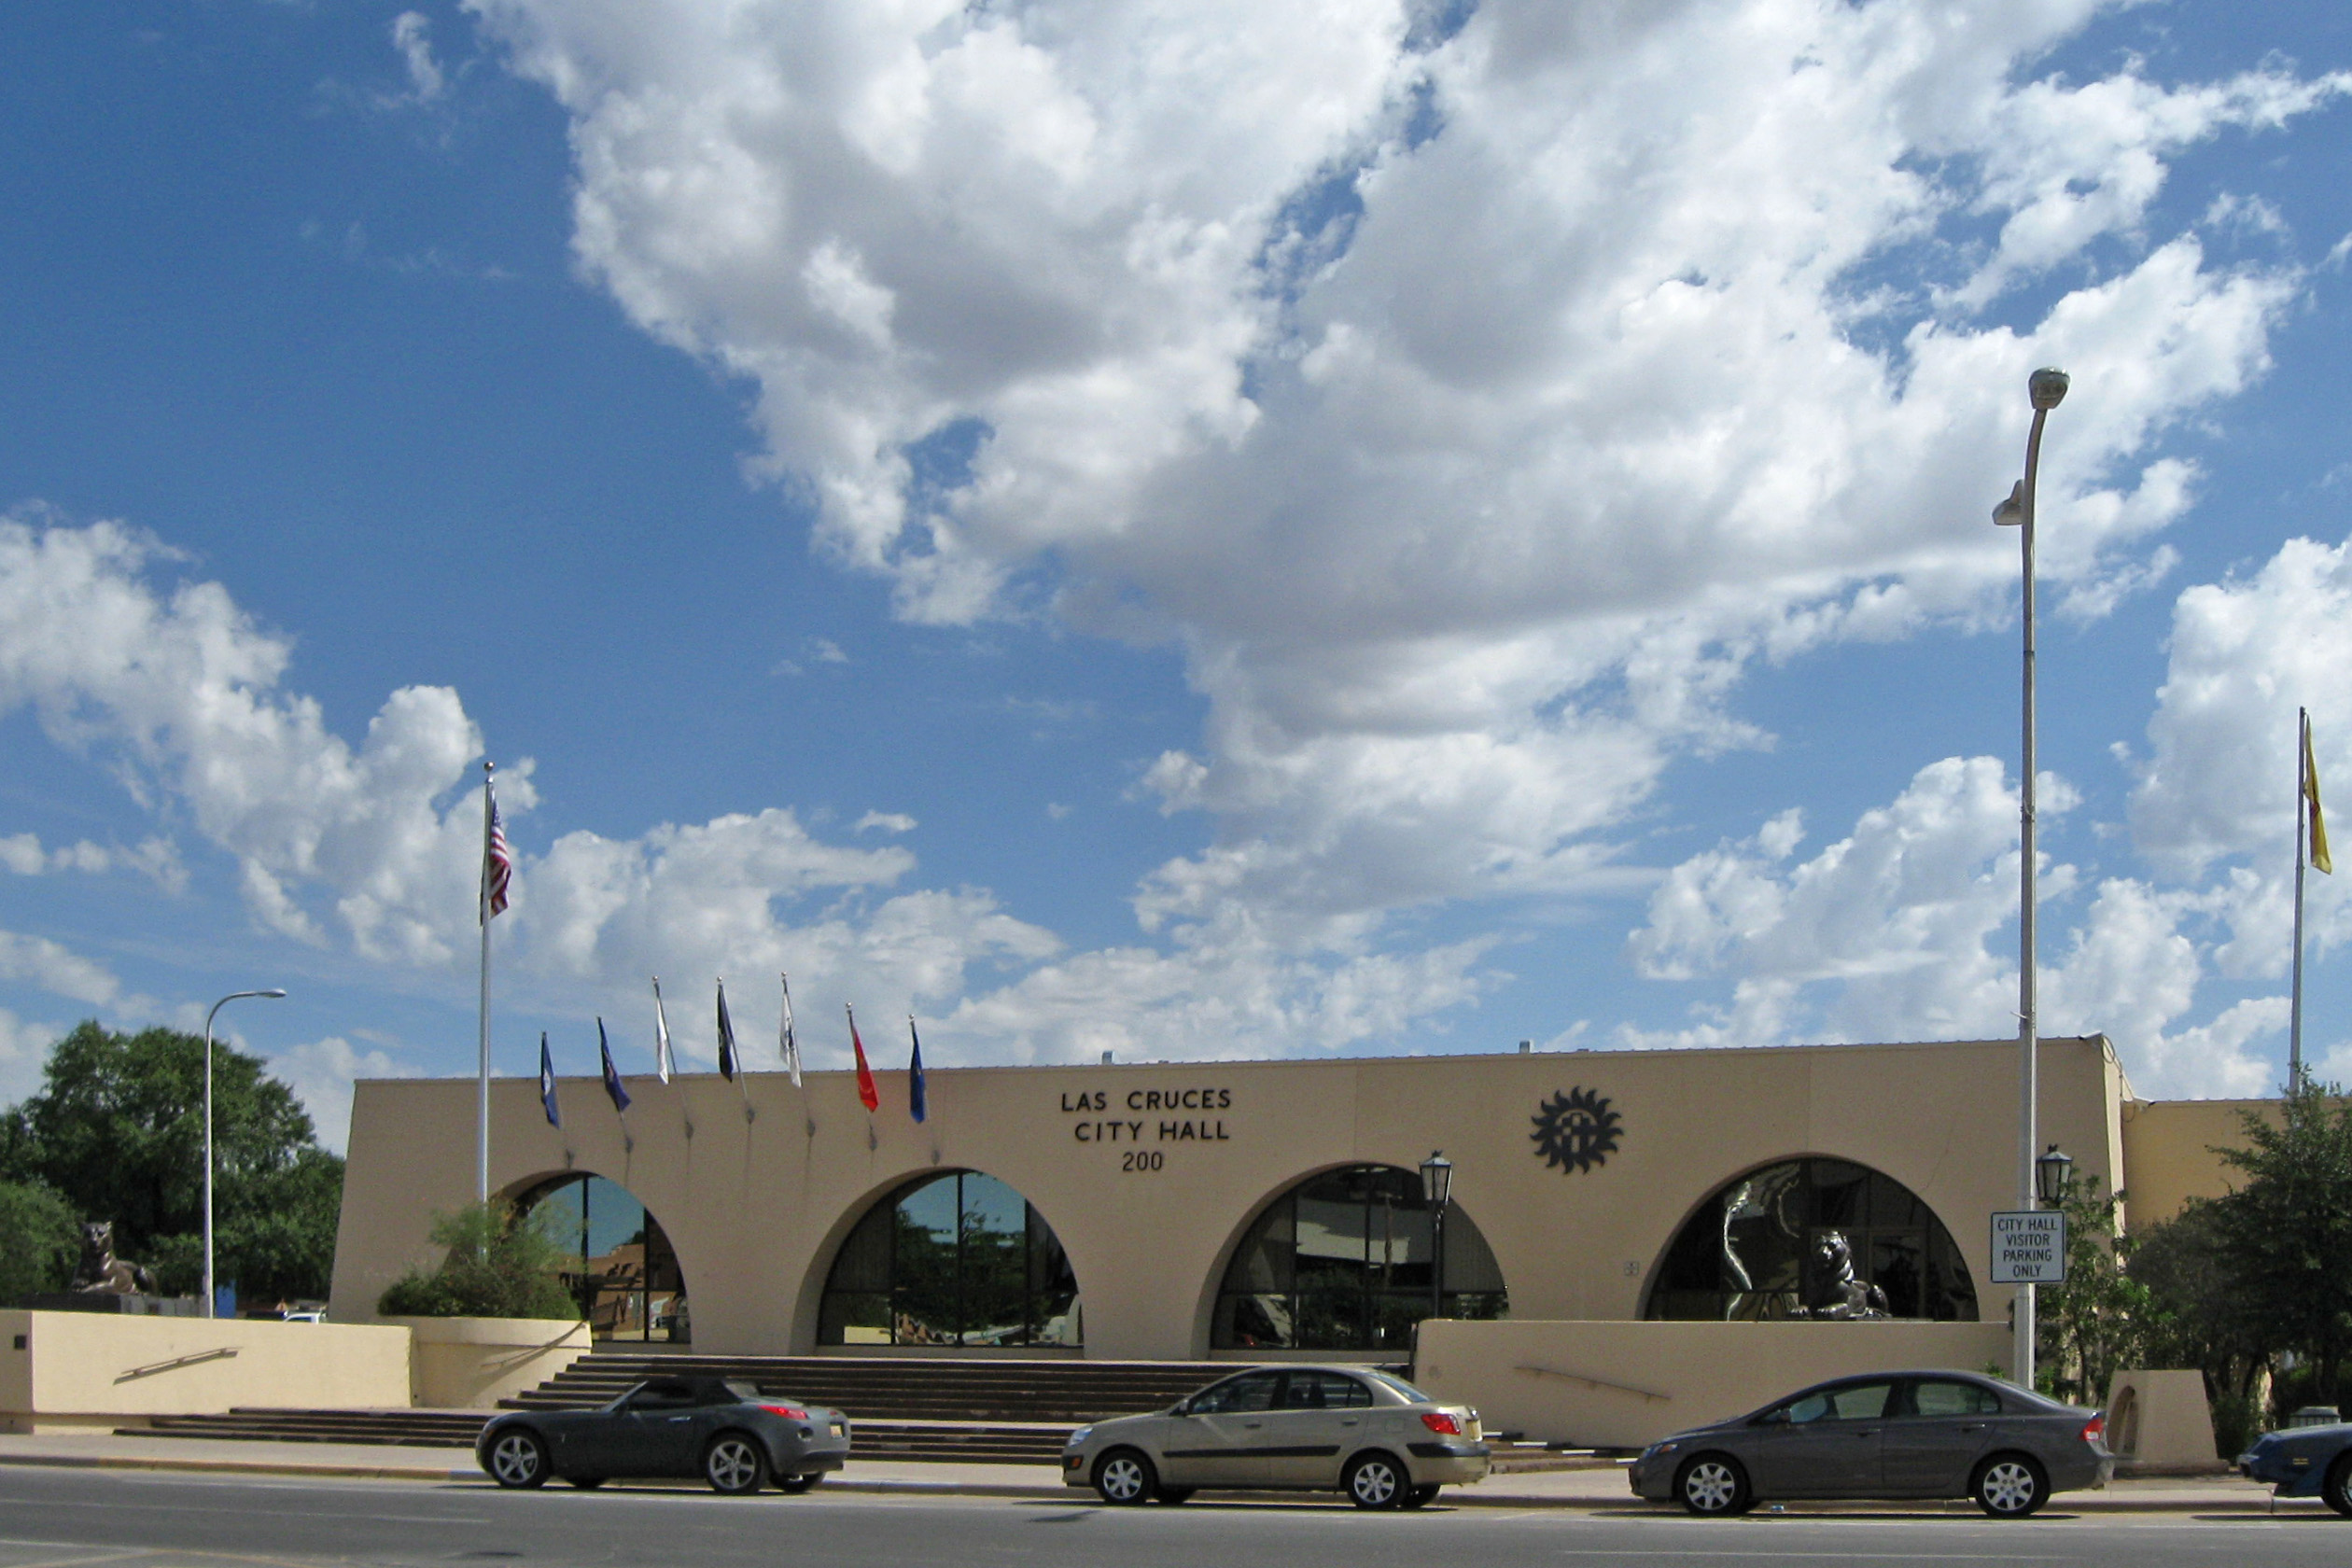 File:Las Cruces New Mexicolas cruces city